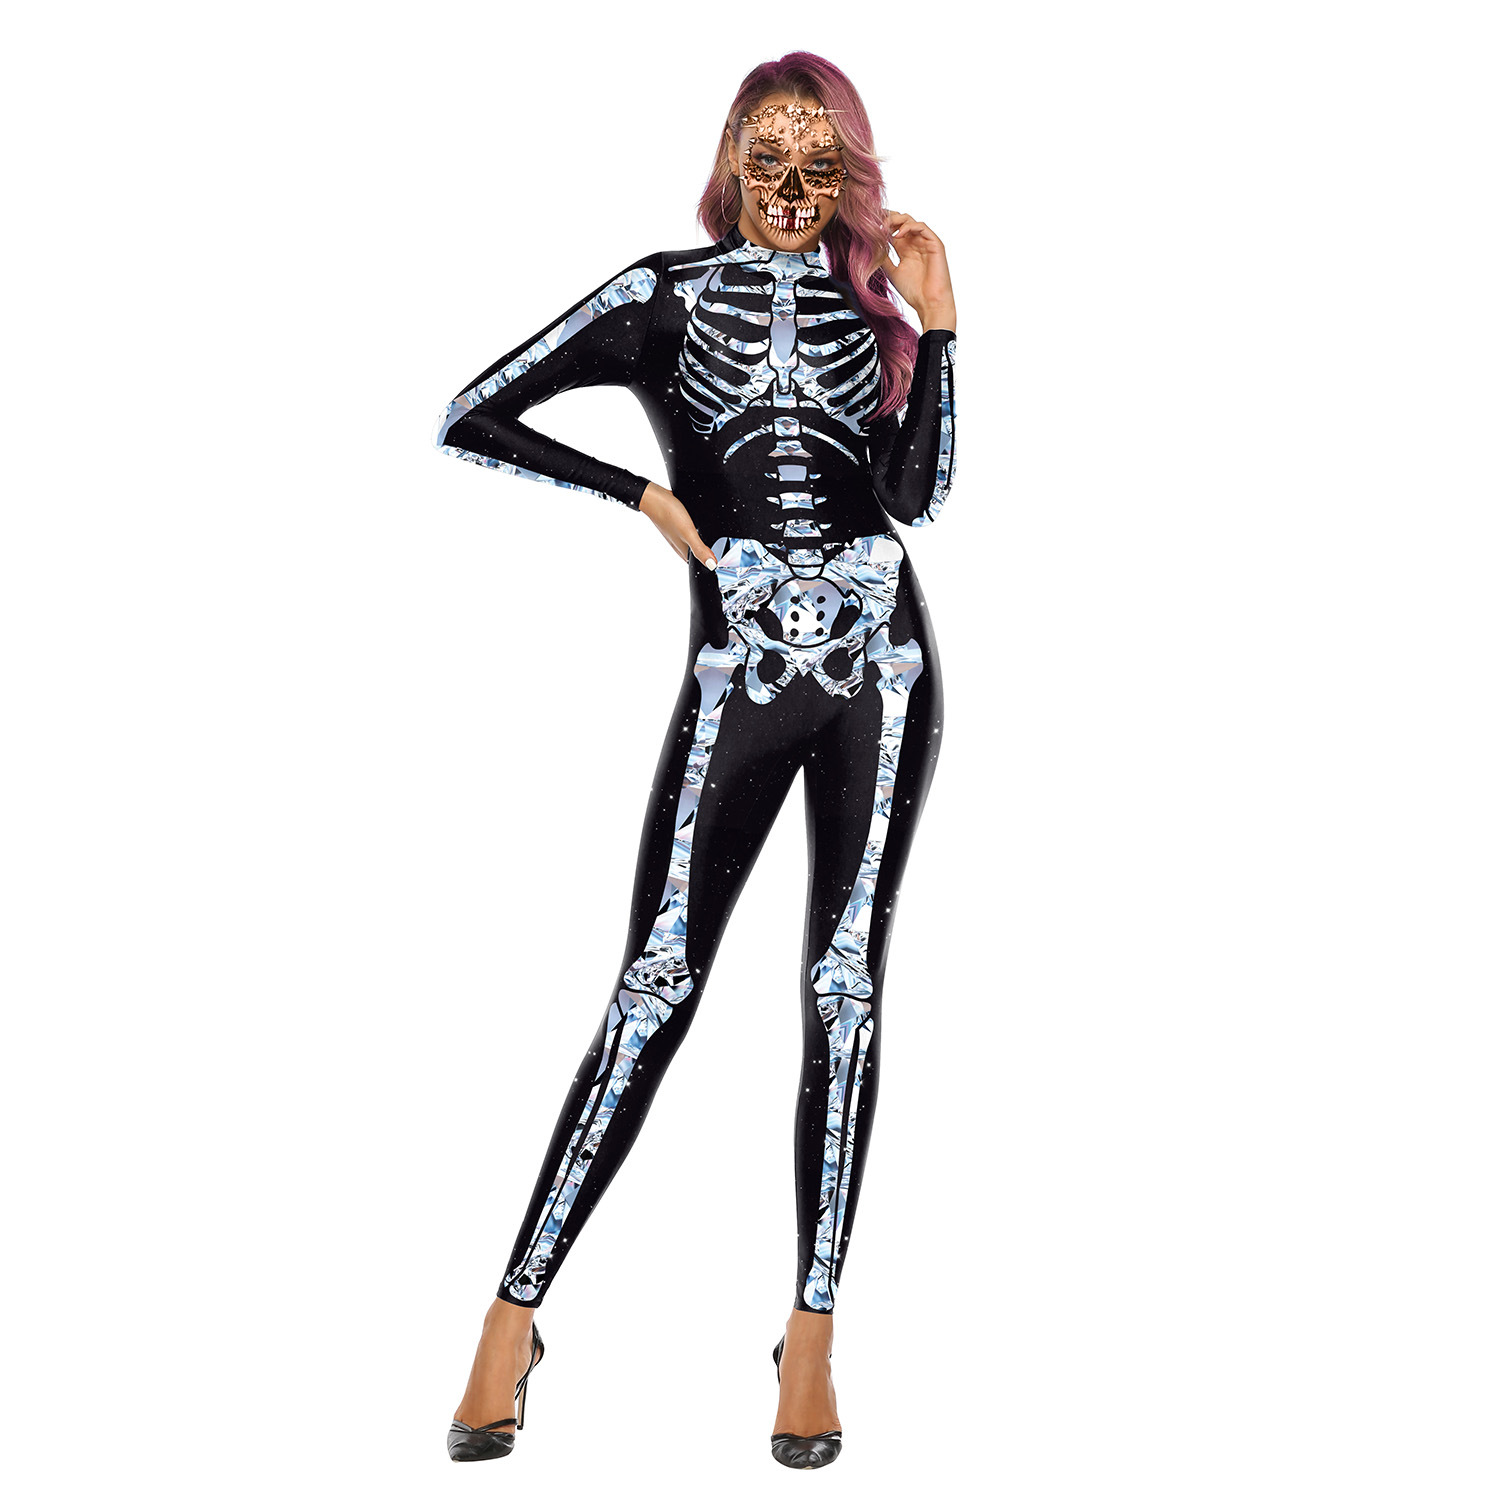 Female Skeleton Printing Jumpsuits Scary Cosplaying for Halloween Festival  WB142-004_S